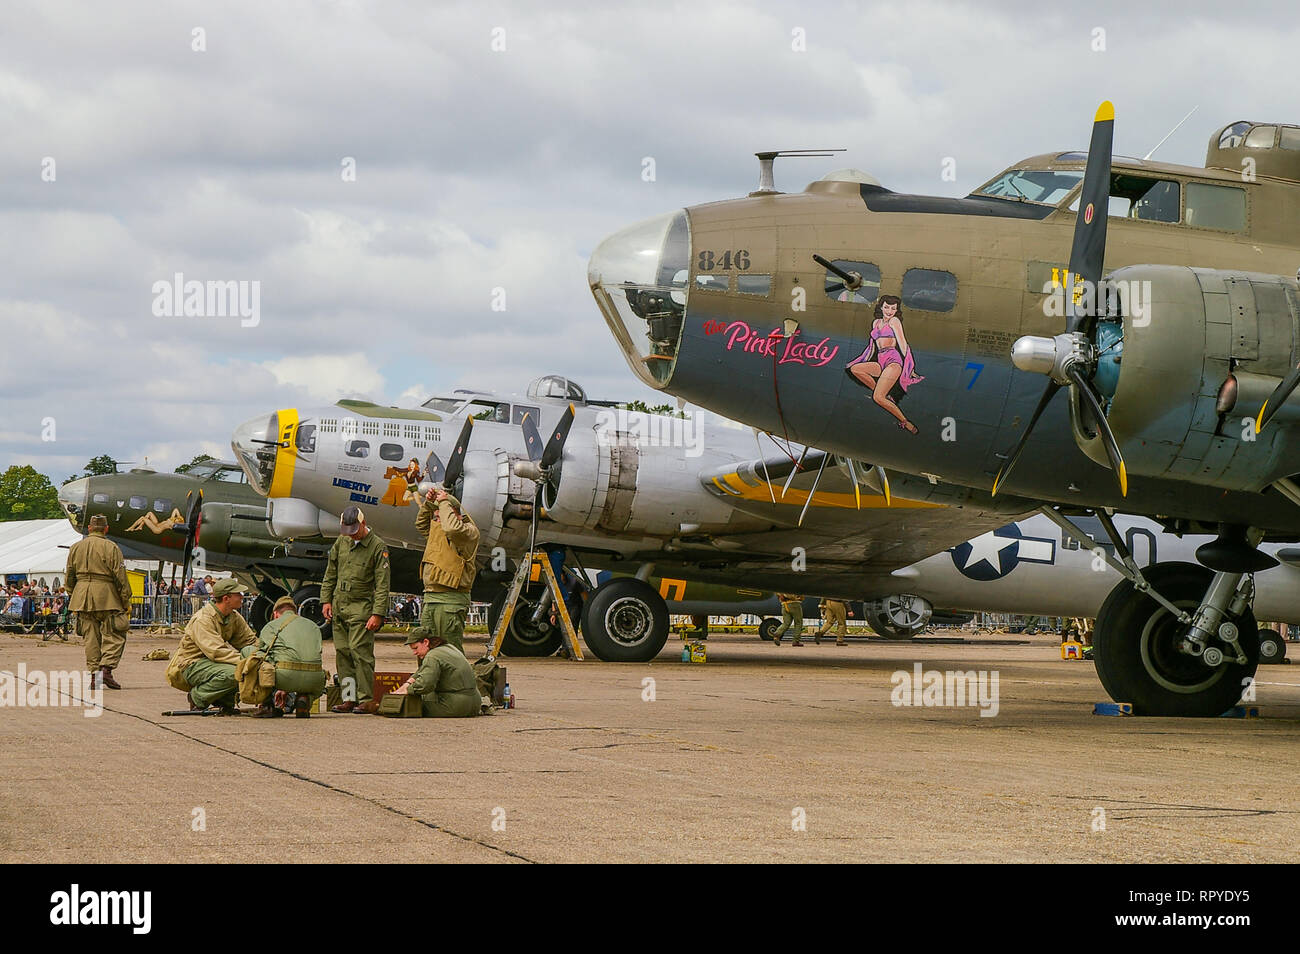 three-second-world-war-boeing-b-17-flying-fortress-bomber-planes-lined-up-at-duxford-world-war-two-bombers-RPYDY5.jpg